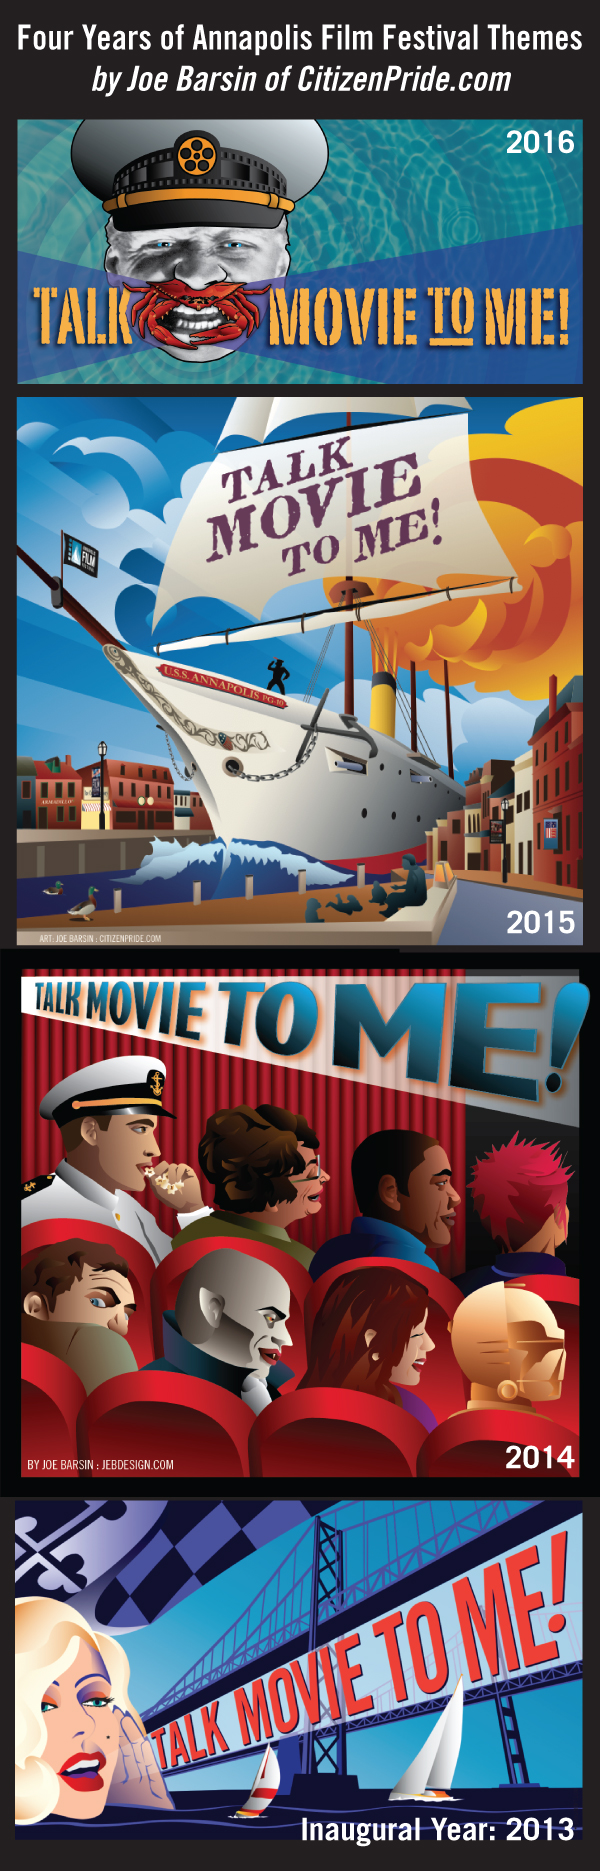 Annapolis Film Festival Posters from 2013, 2014, 2015 and 2016.